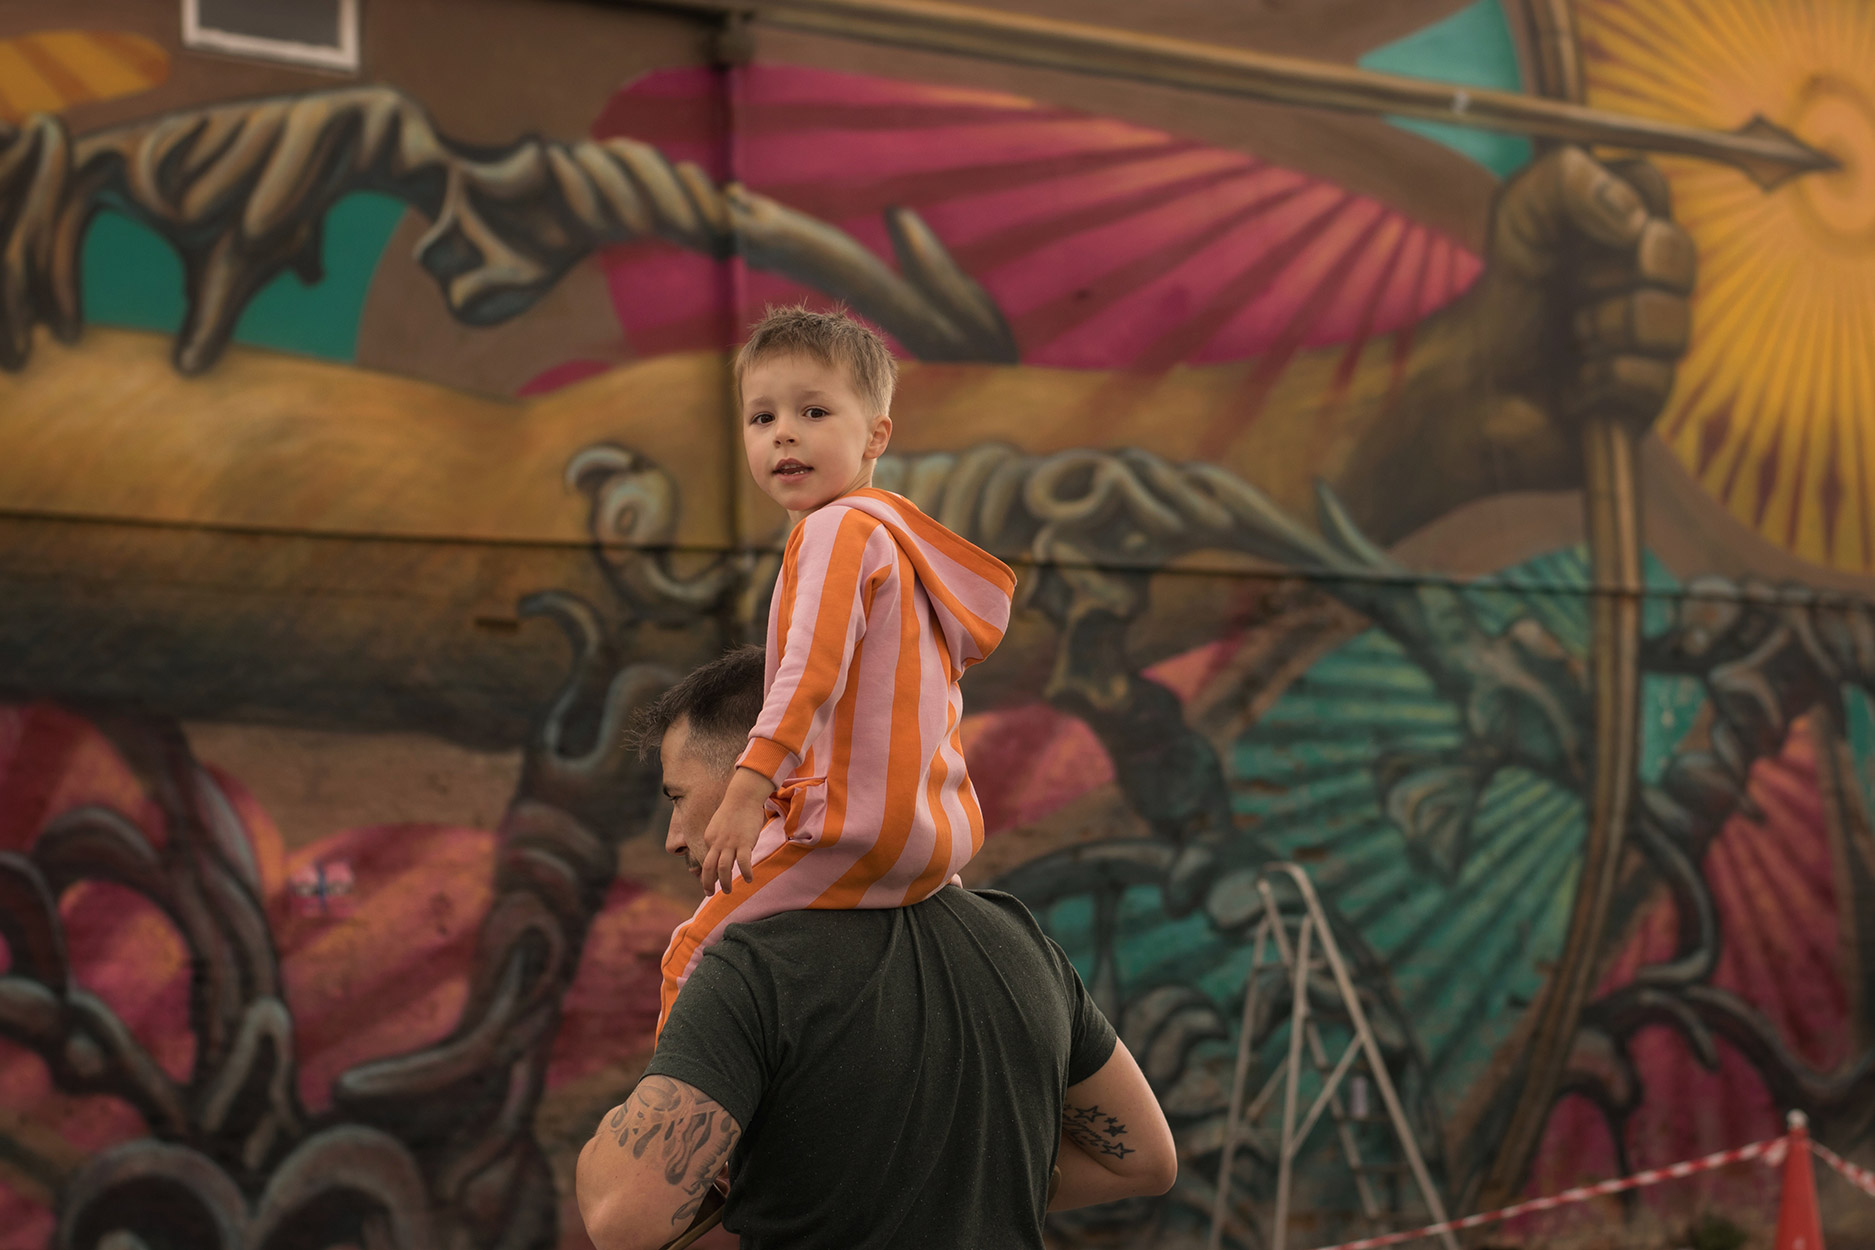 Looking around Cheltenham town centre for street art created for the paint festival 2018 - boy wearing striped Hugo Loves Tiki onesie